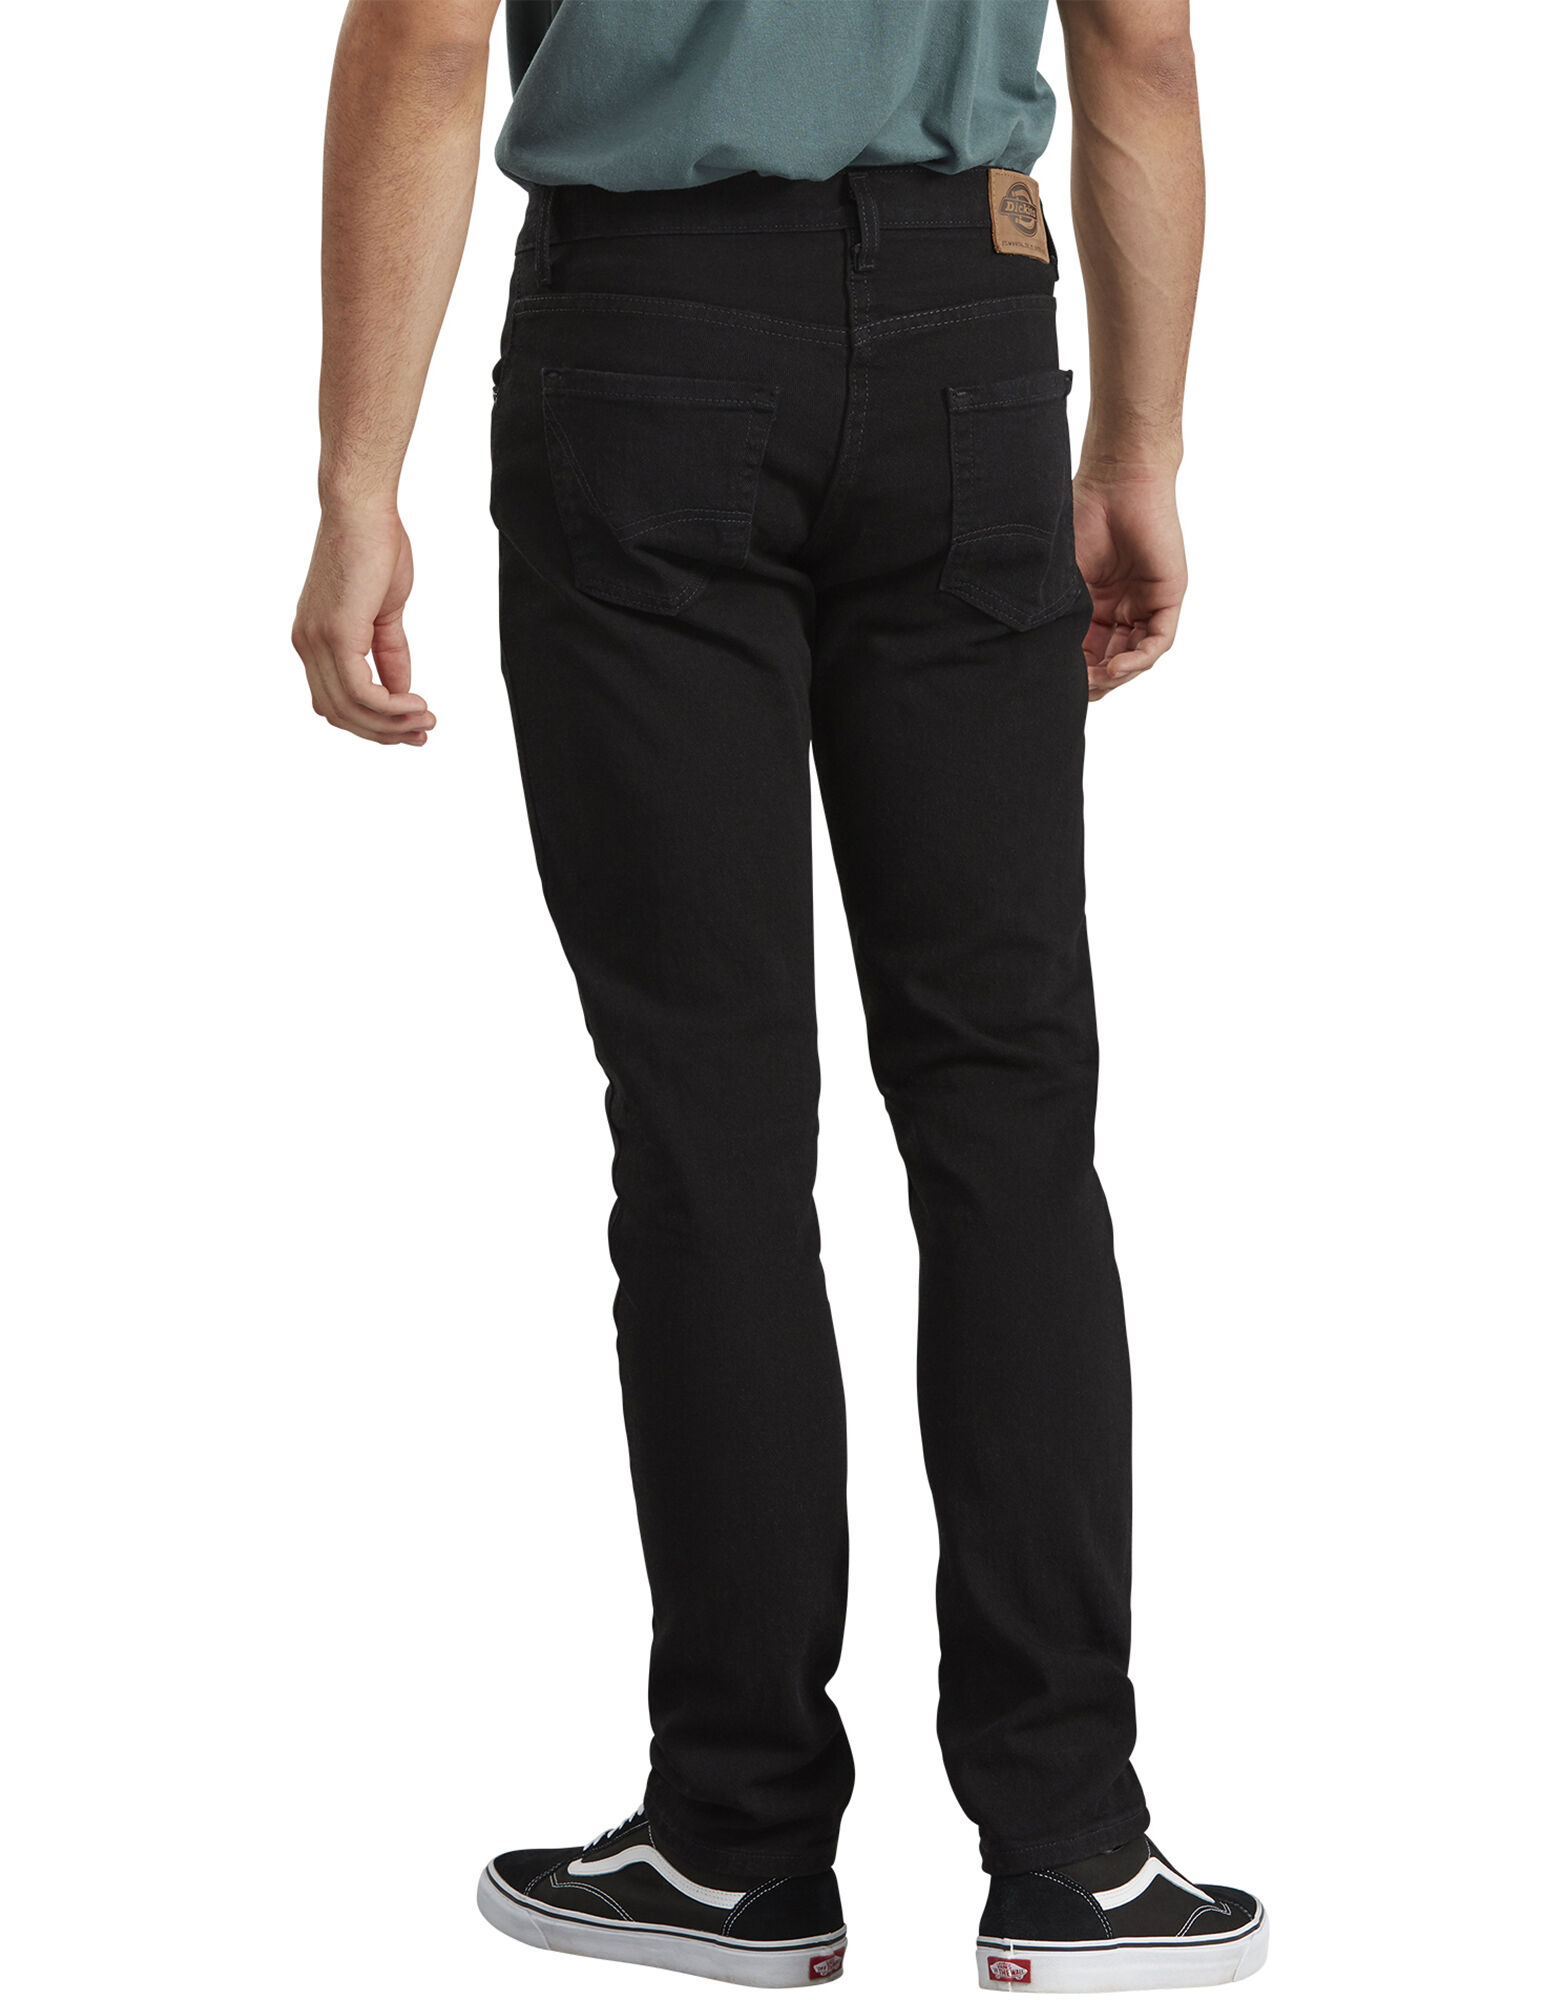 Stretch Skinny Jeans for Men | Dickies